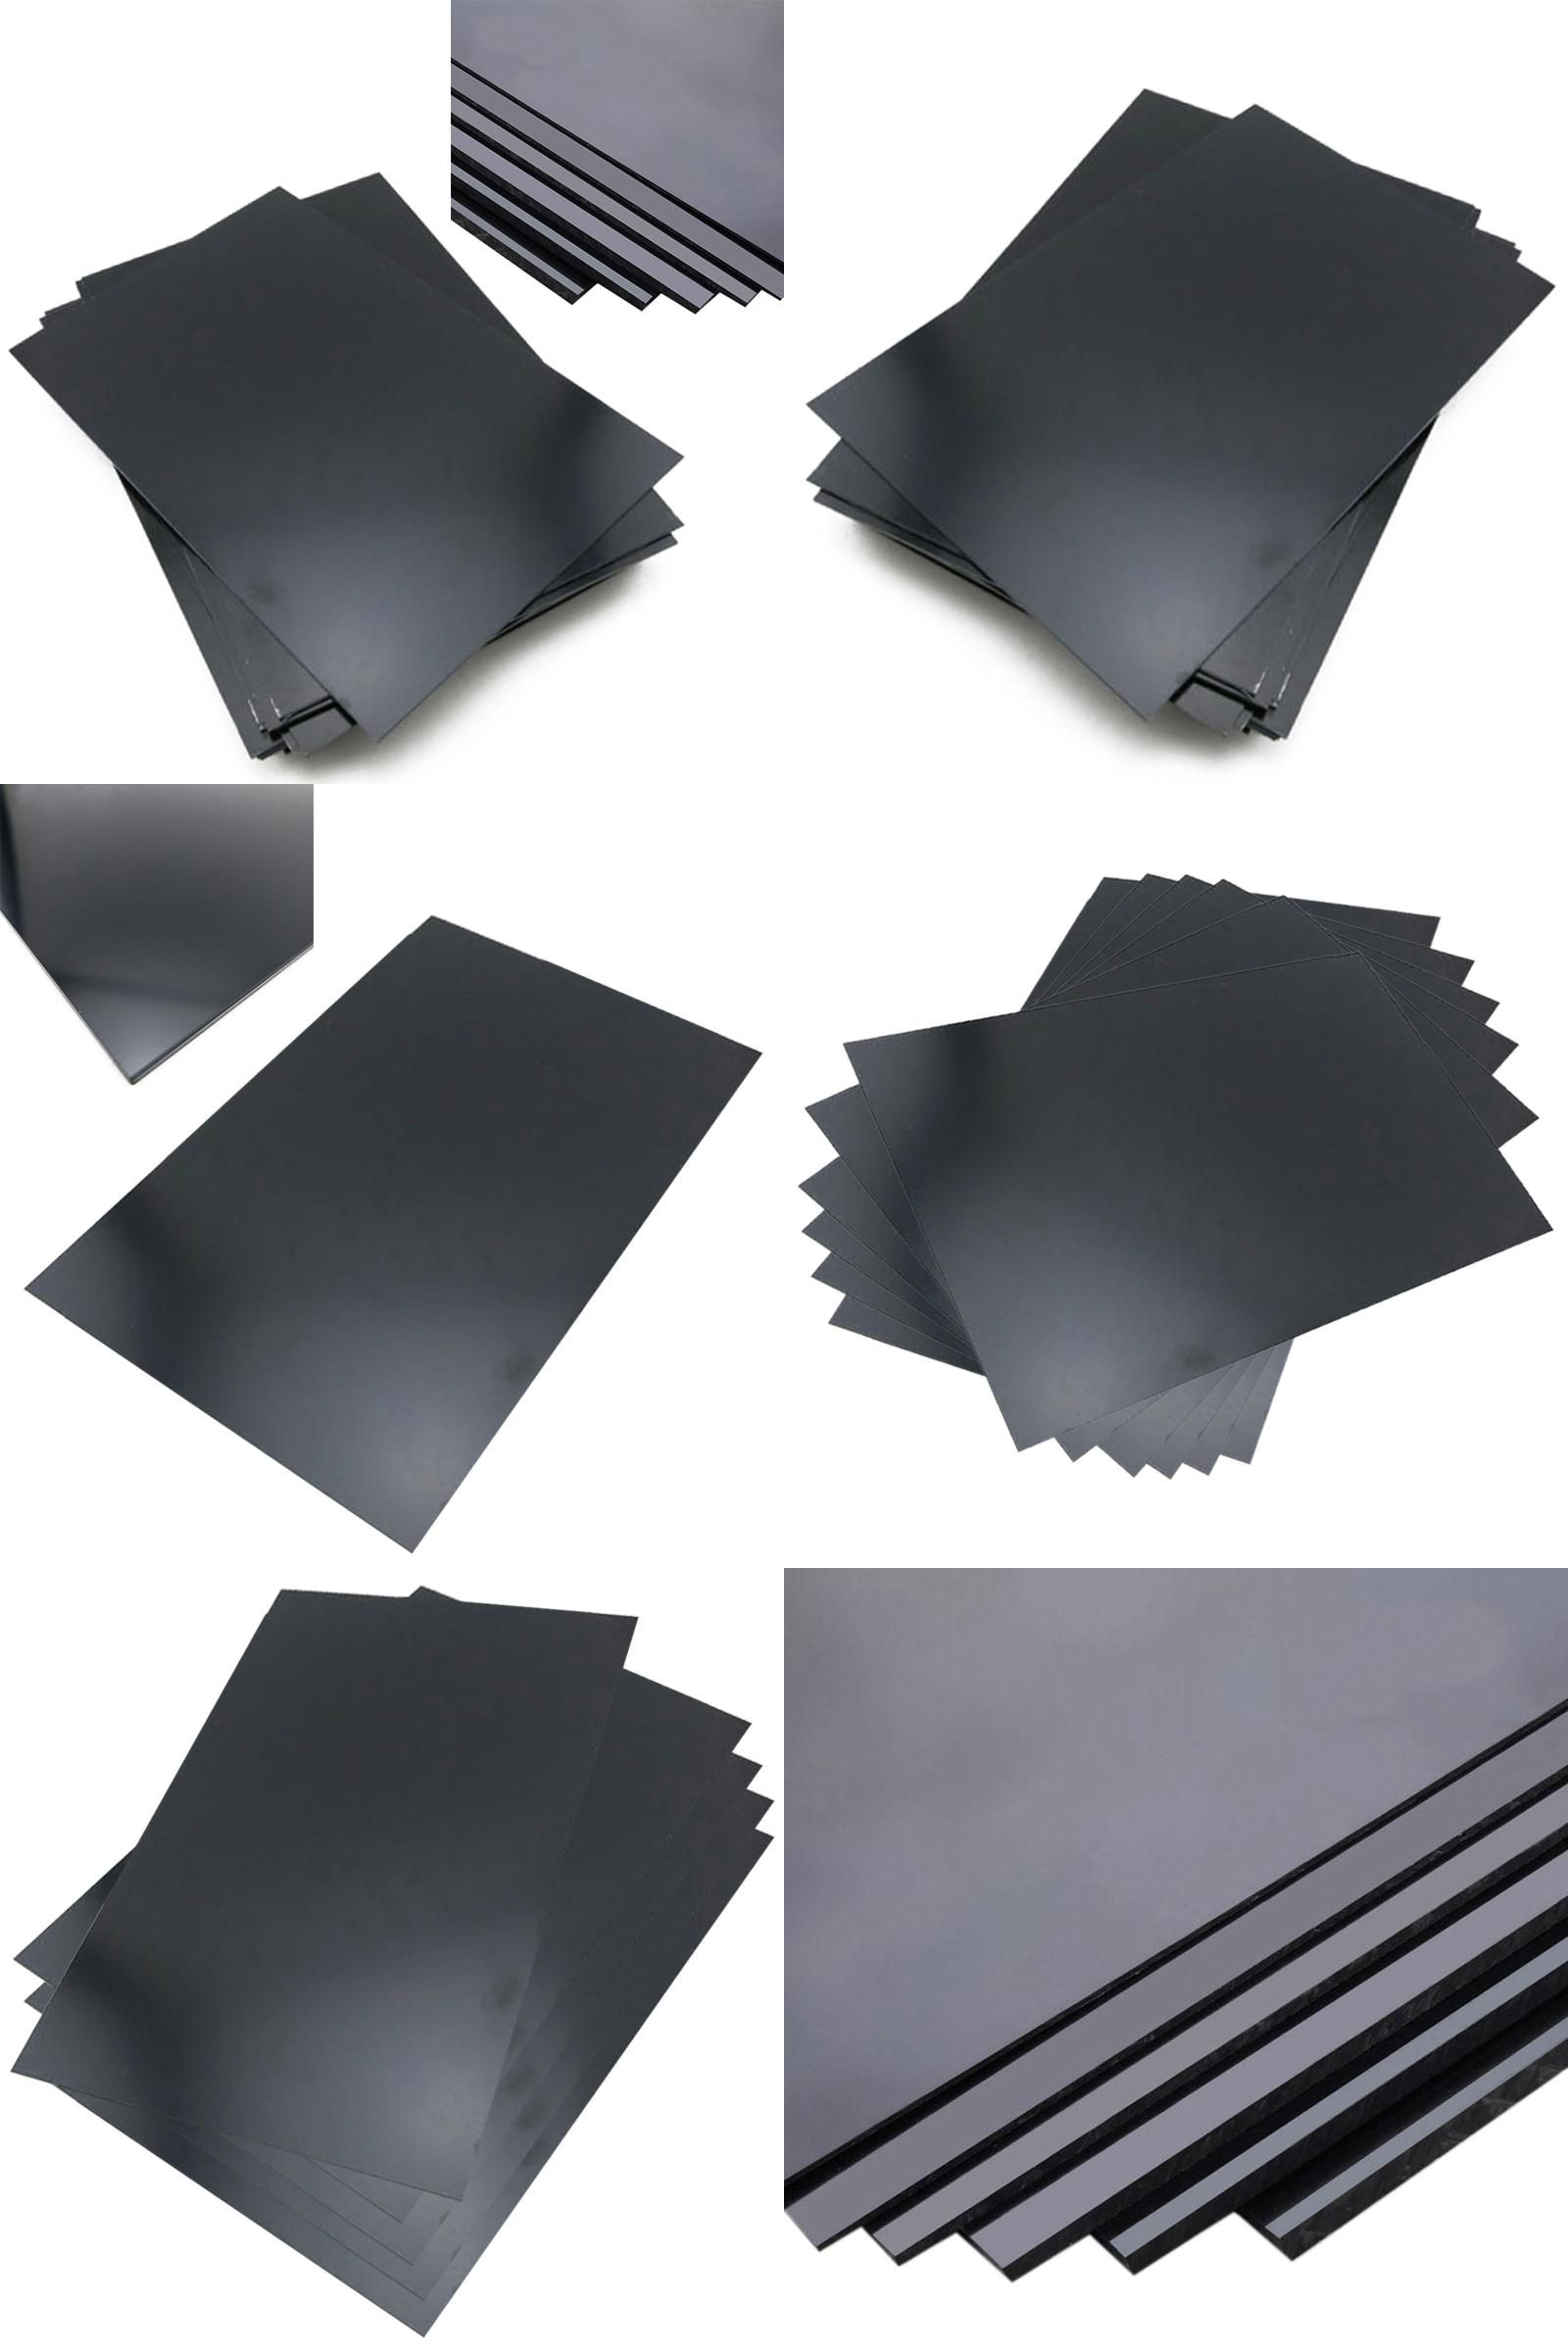 Visit To Buy 1pc Durable Abs Styrene Plastic Plate Sheet Plastic Flat Sheet 1mm X 200mm X 300mm Black Advertisement With Images Styrene Plastic